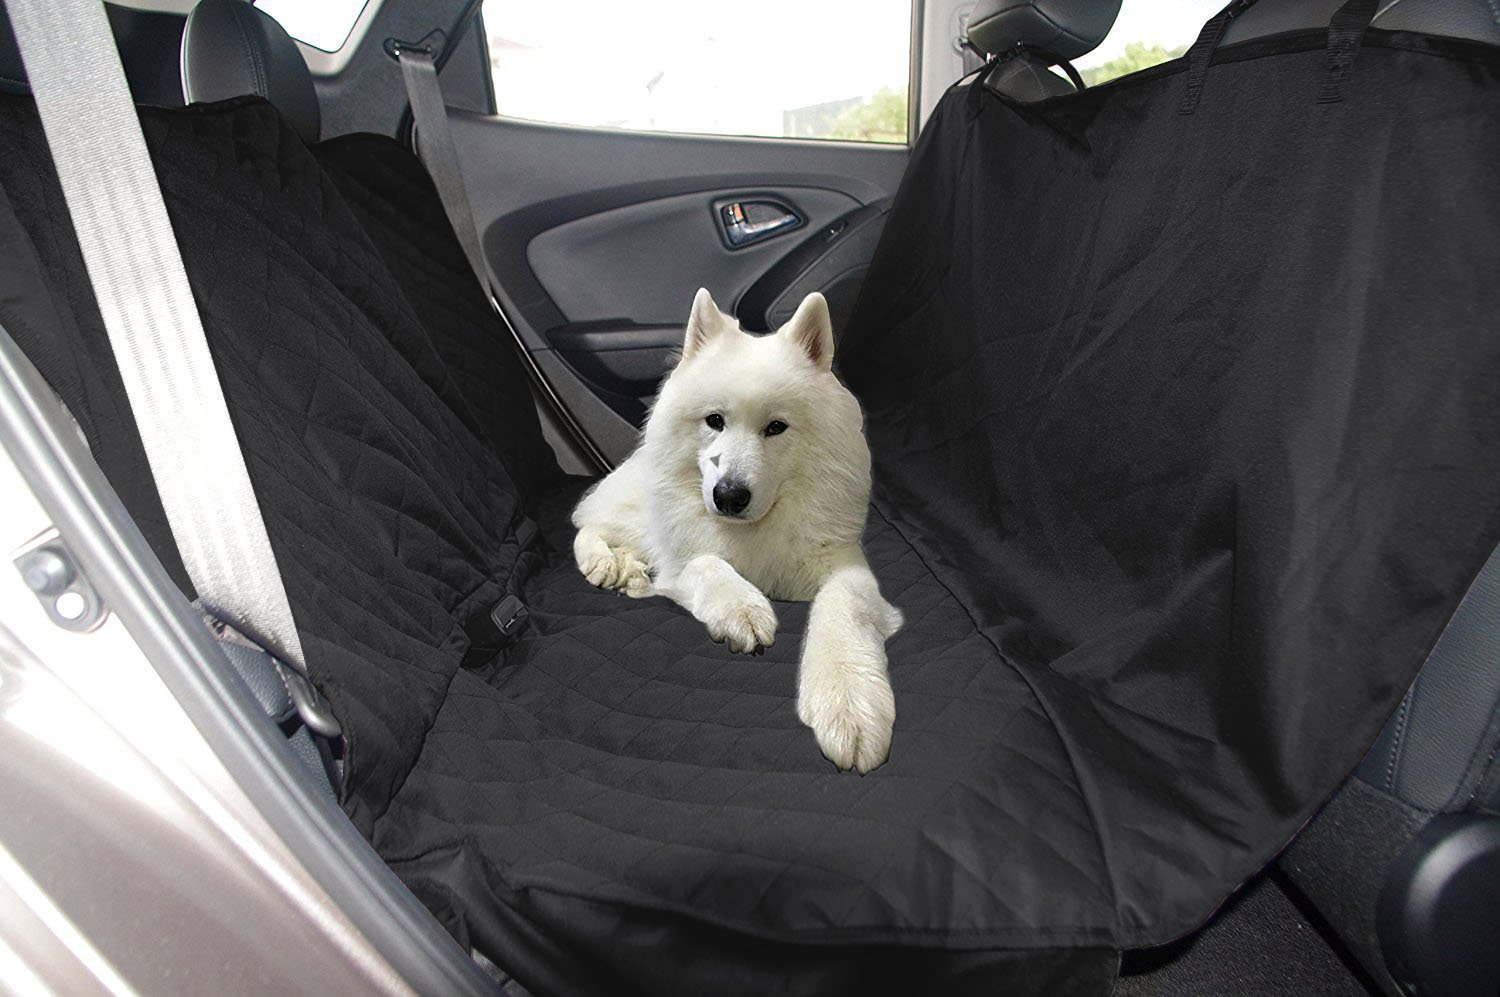 iCOVER Pet Car Bench Seat Cover, Dog Seat Cover for Trucks and SUVs, Quilted Rear Seat Cover, Waterproof Pet Seat Cover, Washable Seat Protector, Nonslip backing, Black Color Hammock Style PSC21502